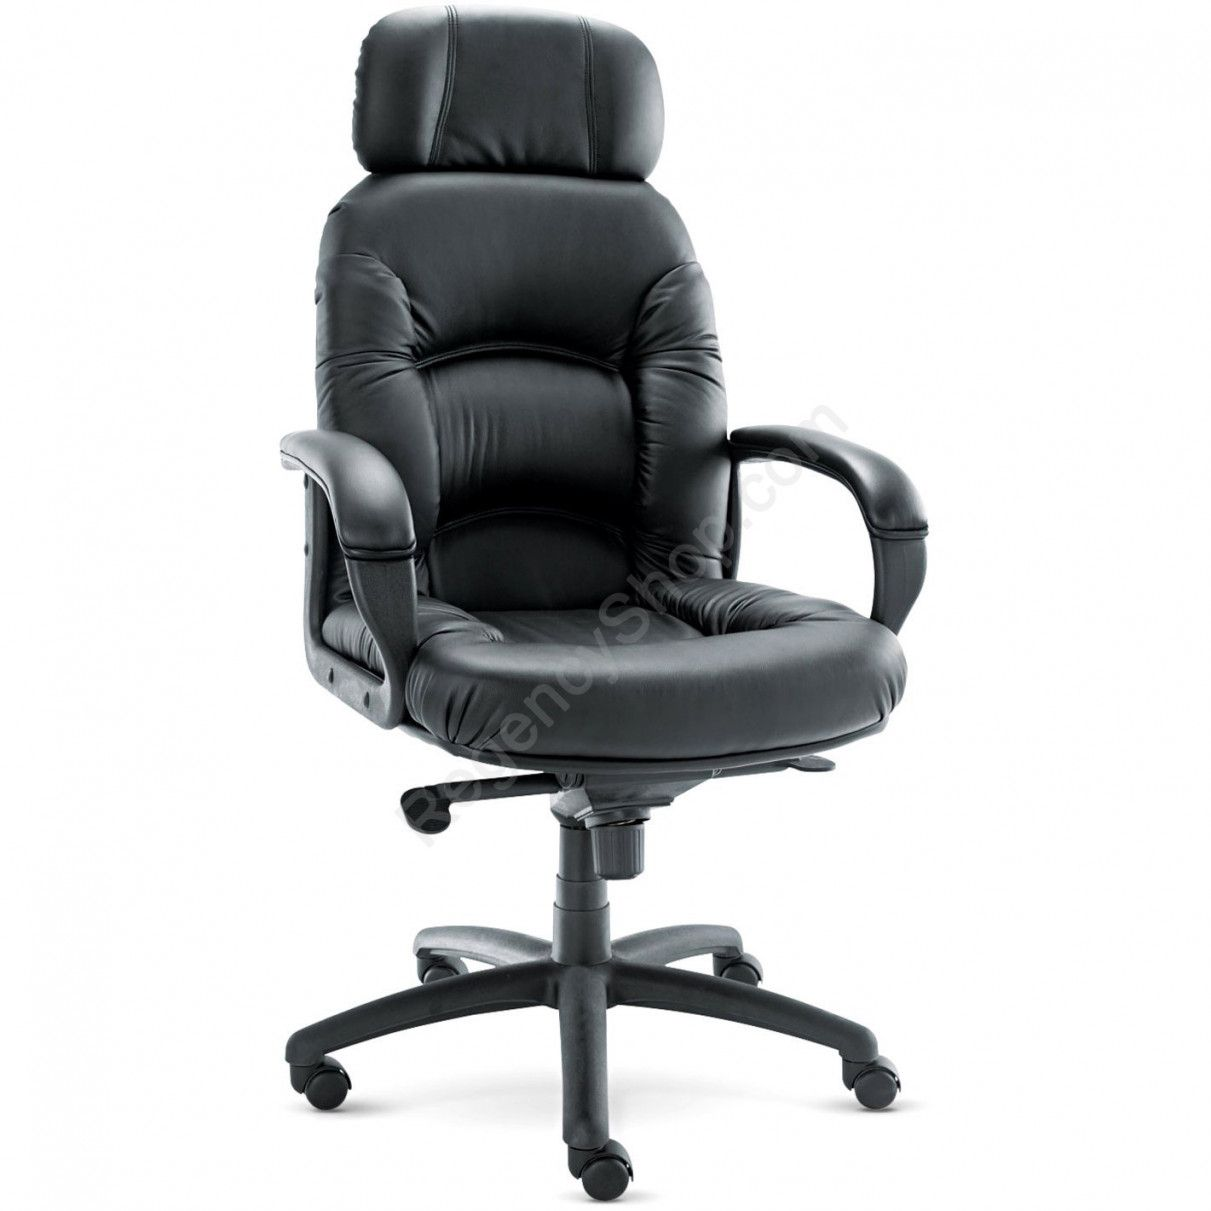 Best Cheap Computer Chair - Home Office Desk Furniture Check more at ...